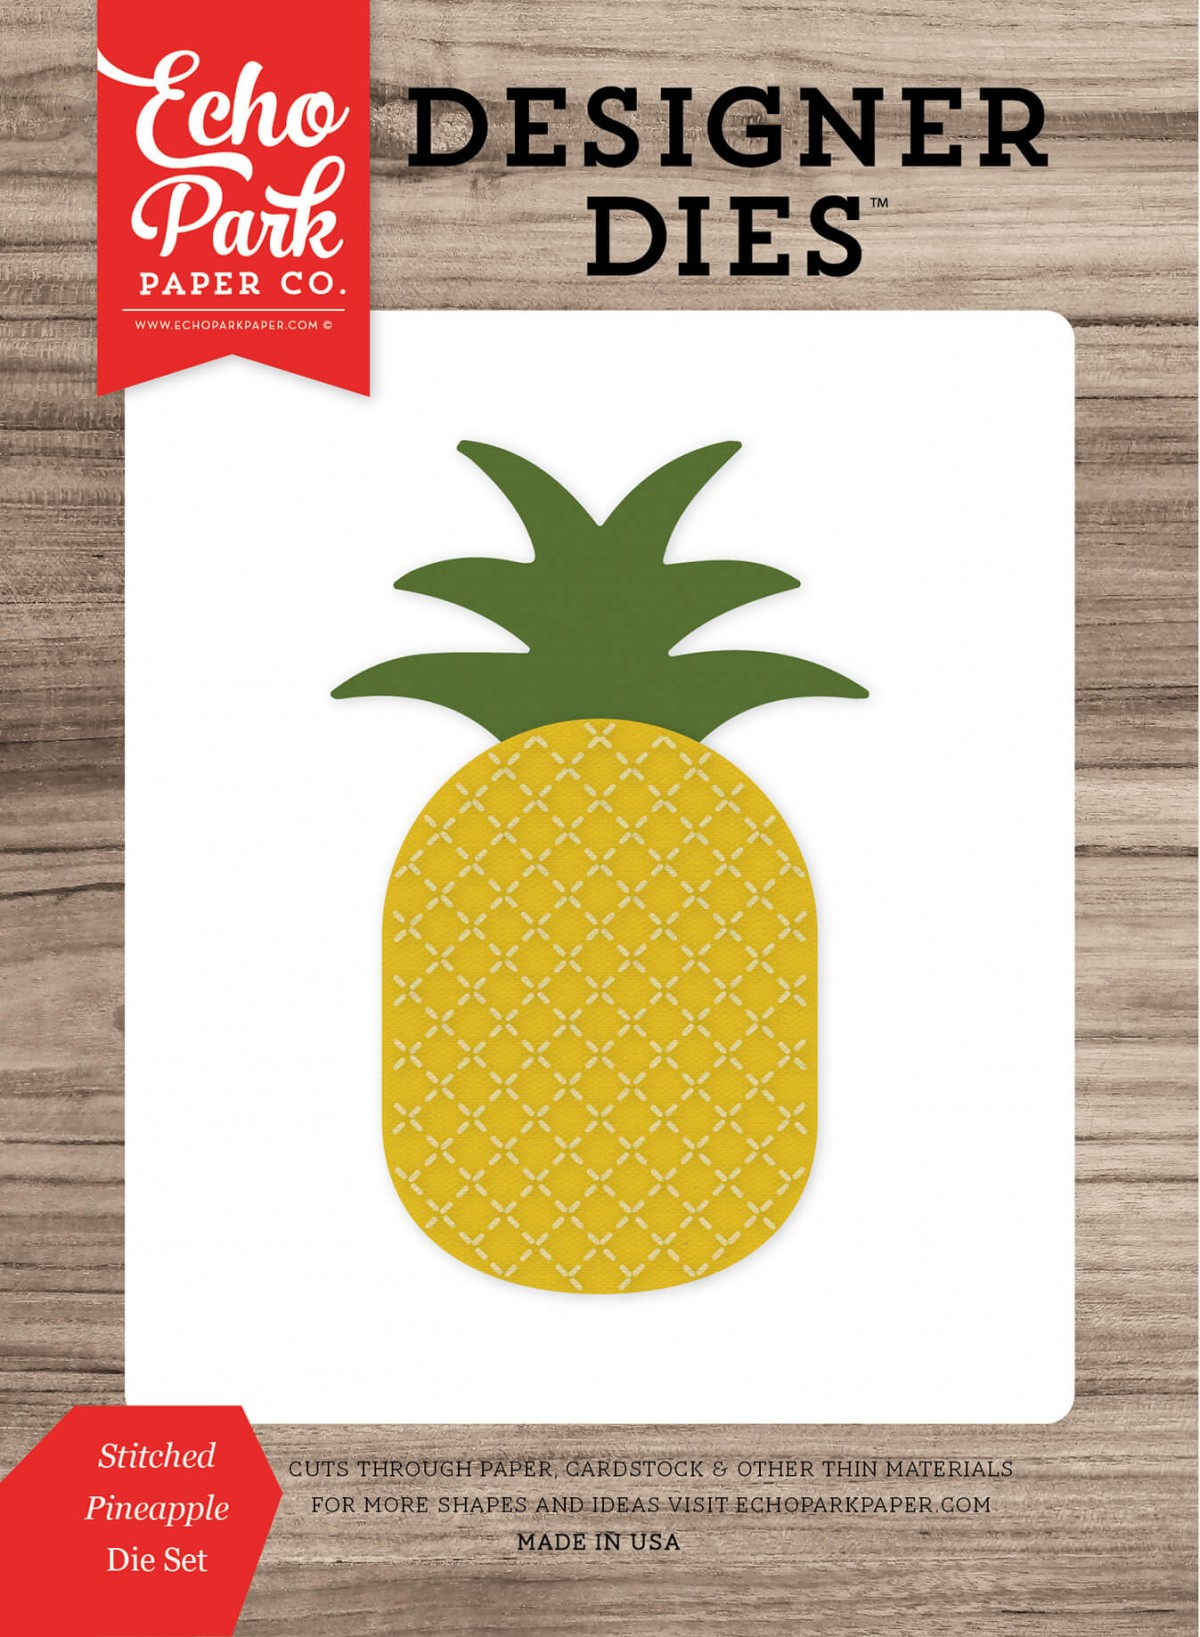 Troquel Stitched Pineapple